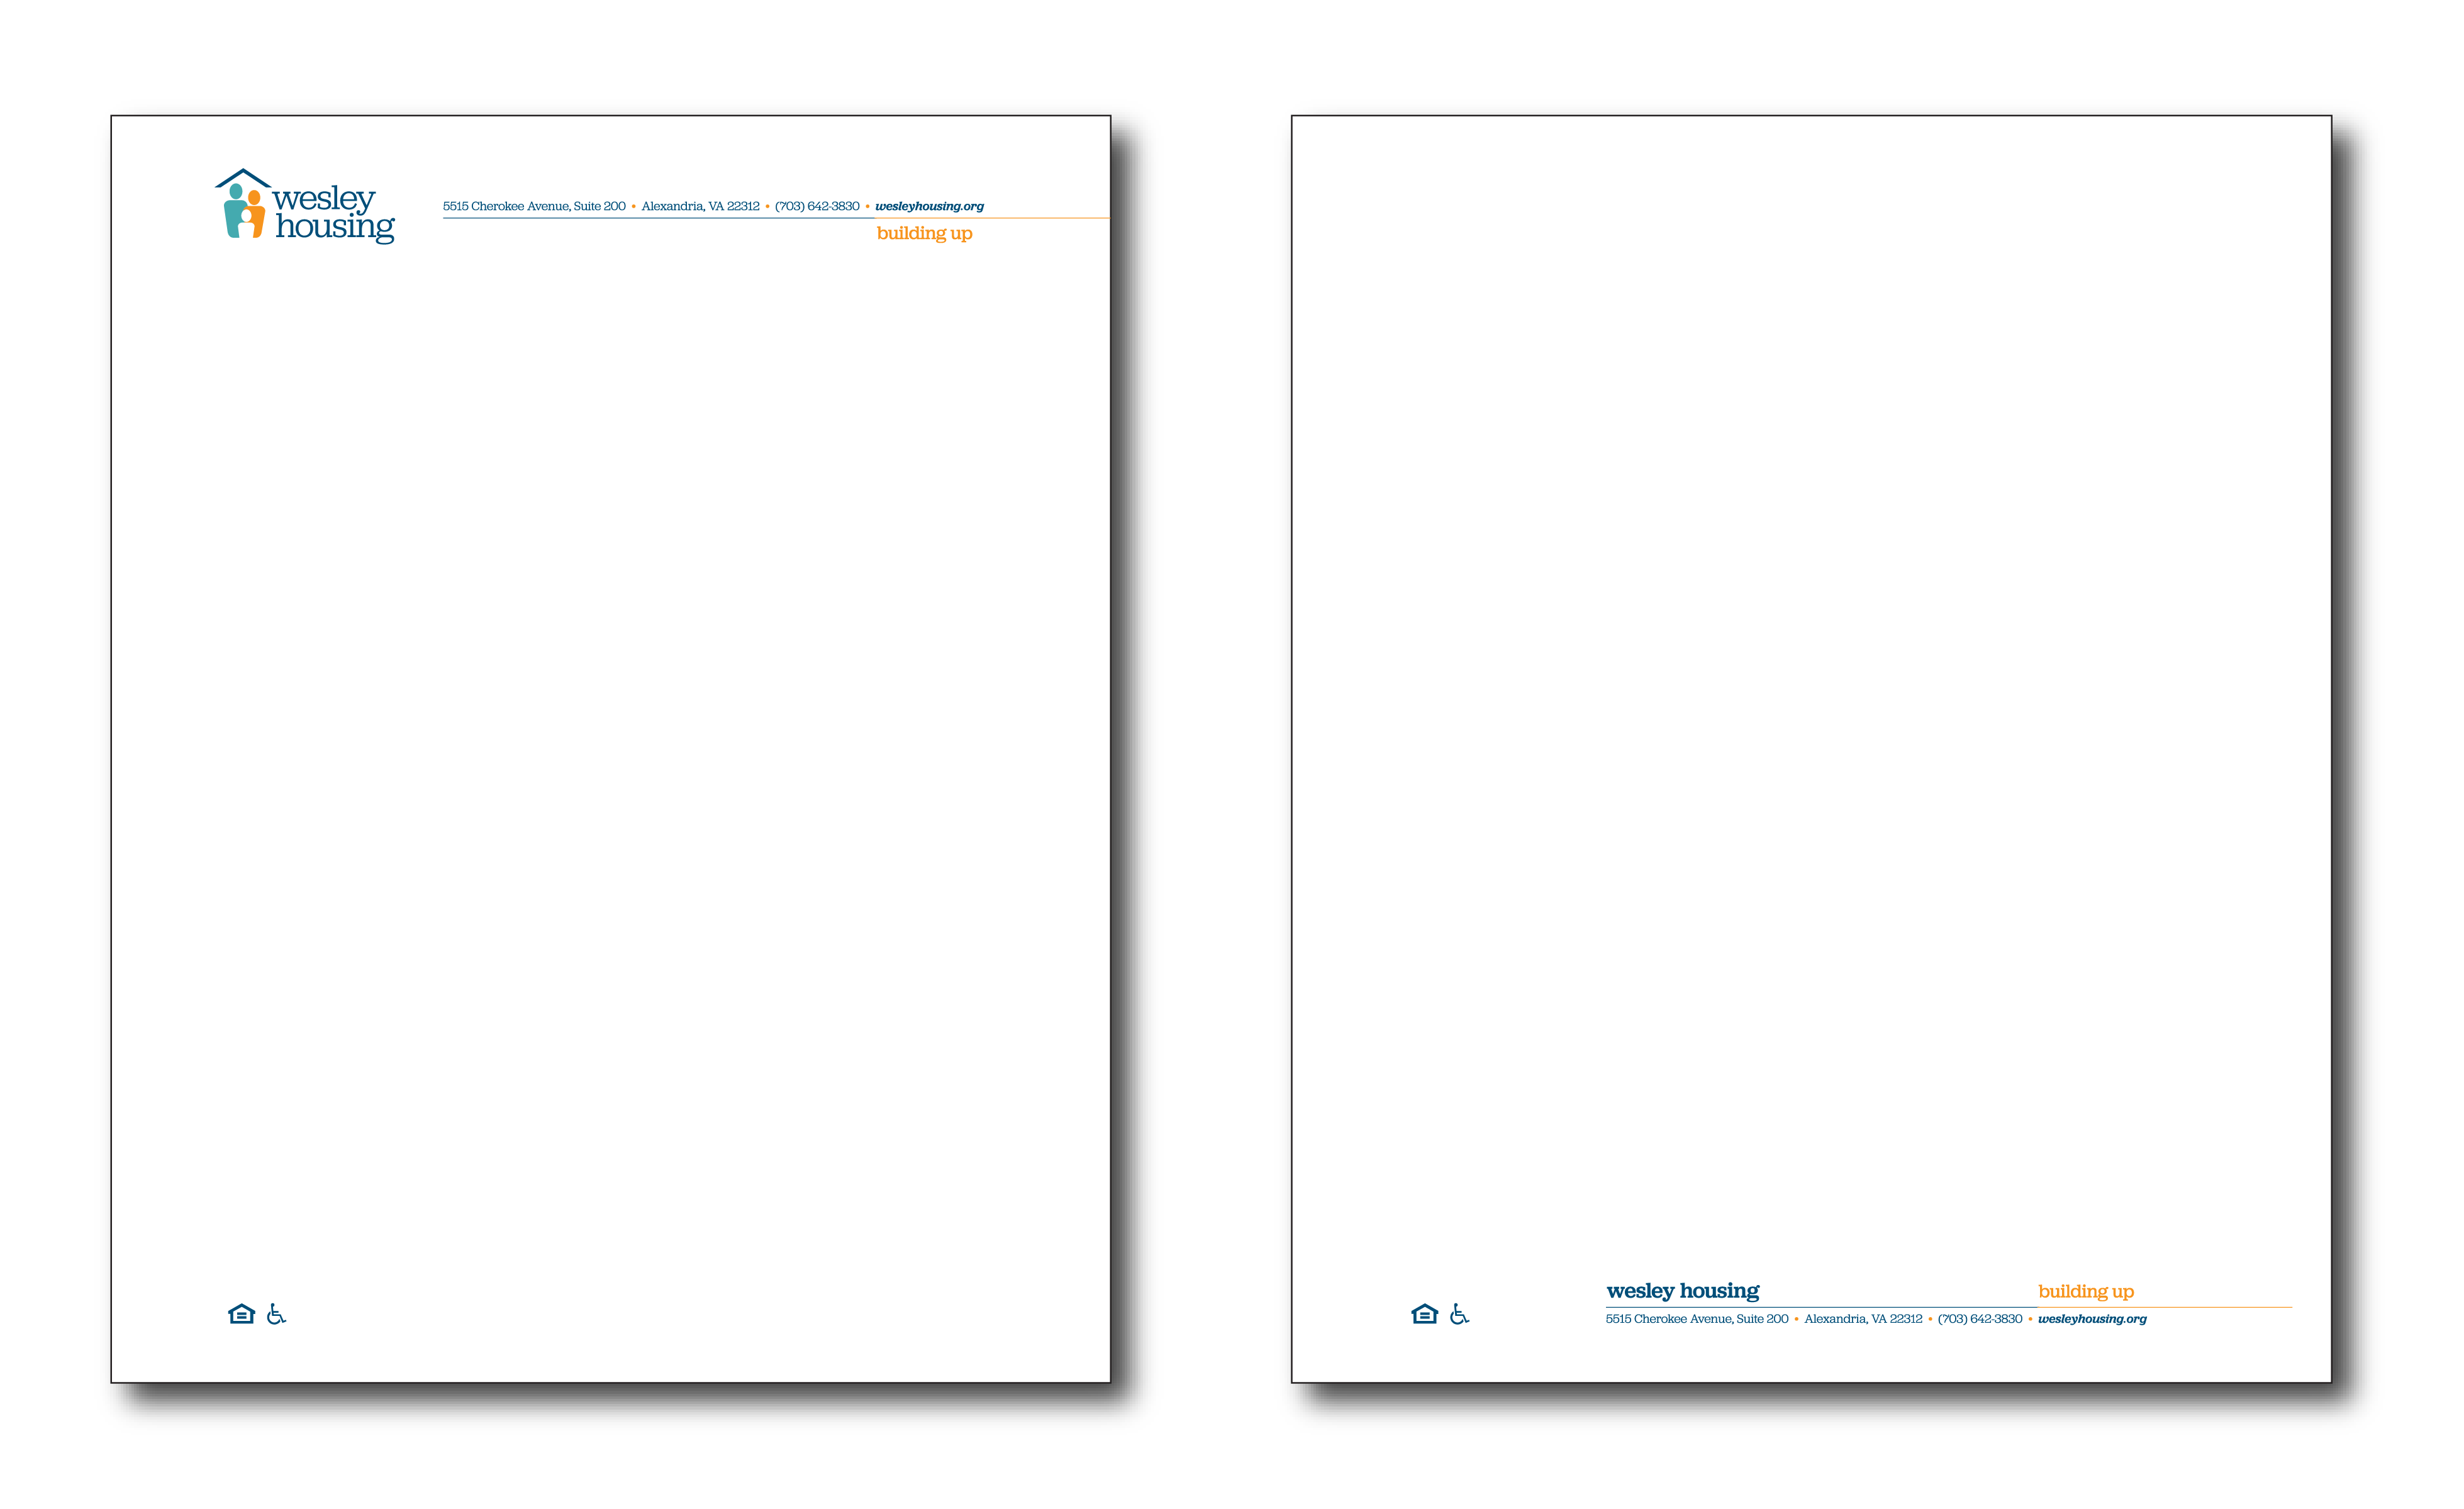 letterhead template for Wesley client